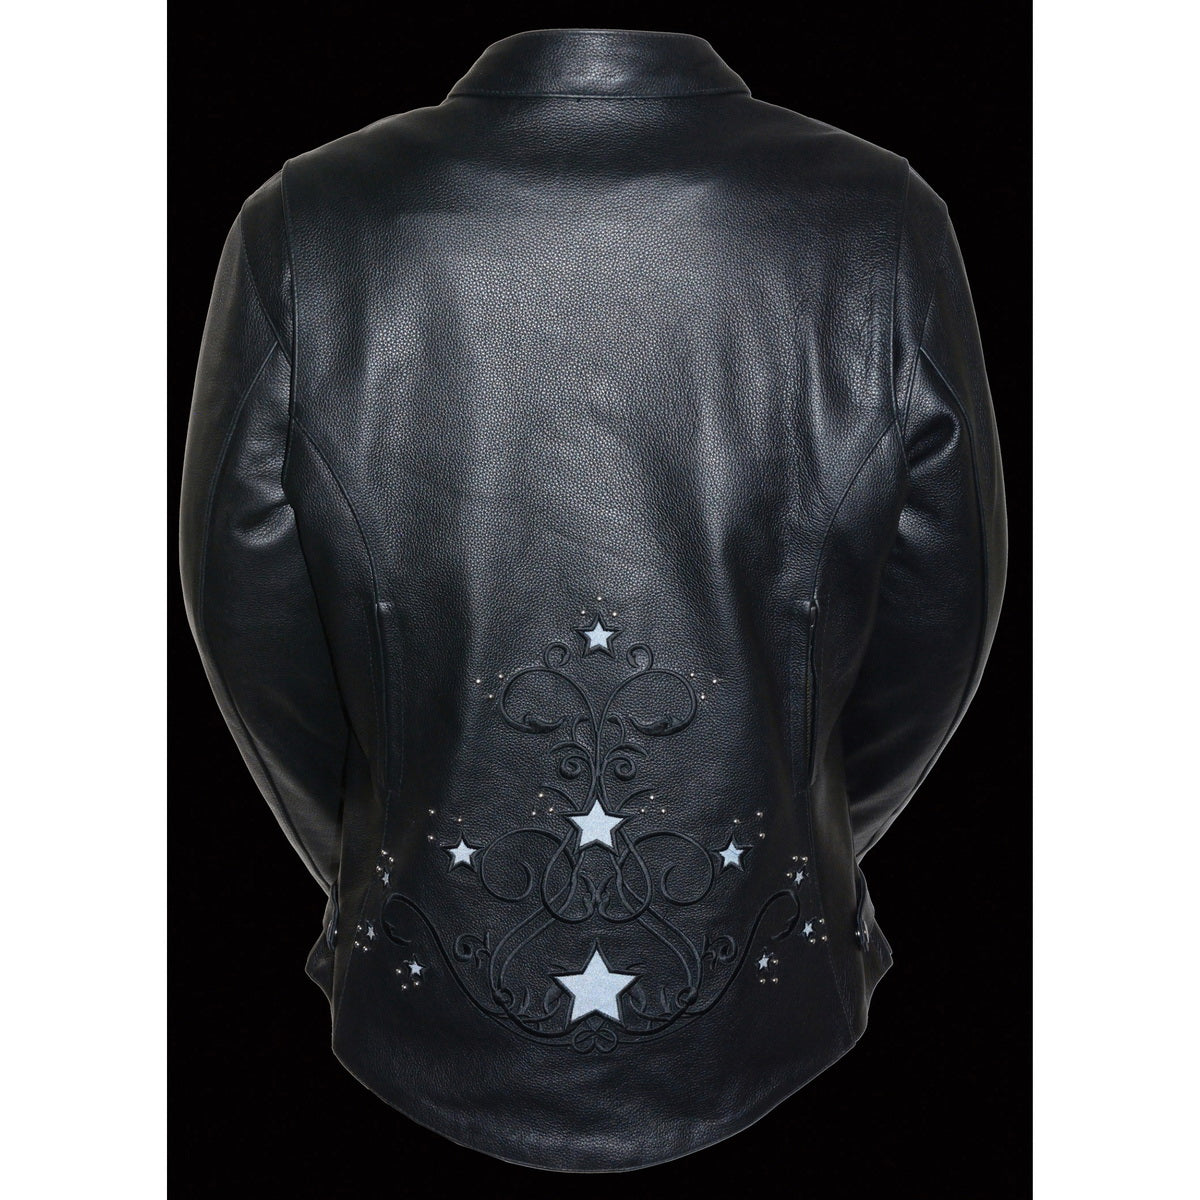 Milwaukee Leather ML2500 Women's Reflective Star Riveted Black Leather